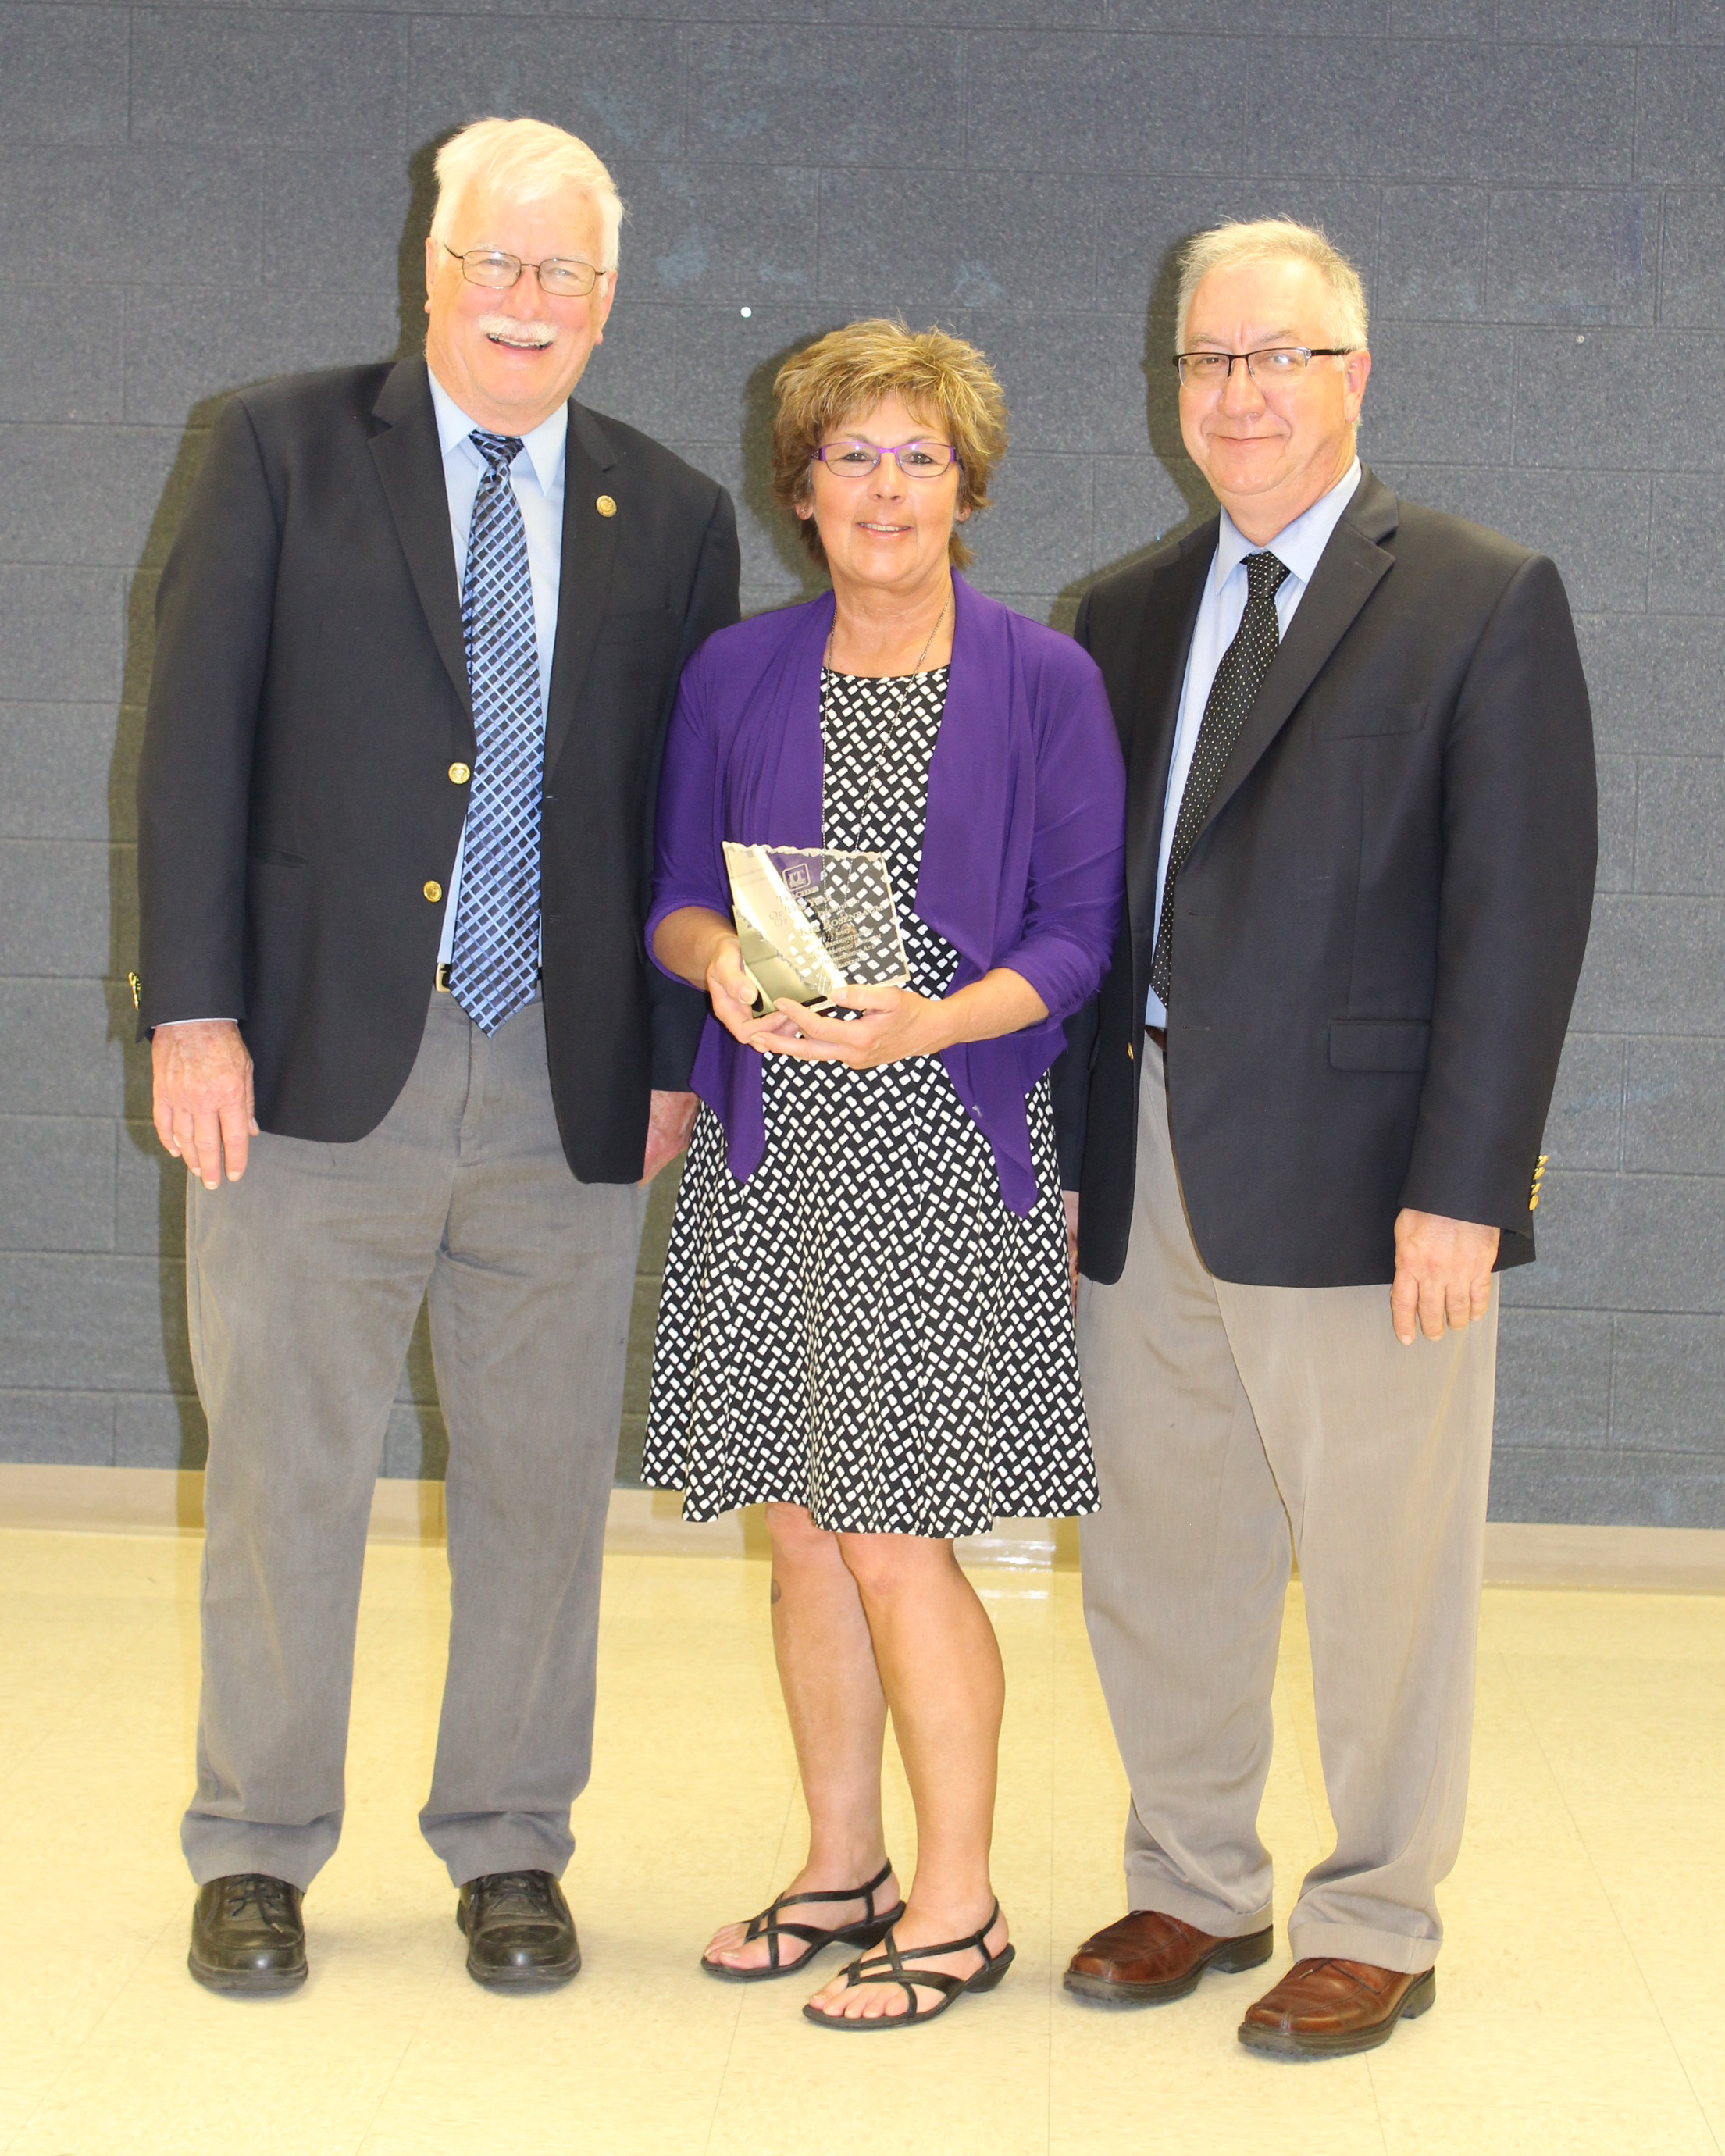 Michael Kelly, Kim Rosenbaum - Teacher of the Year, Jim Stradling